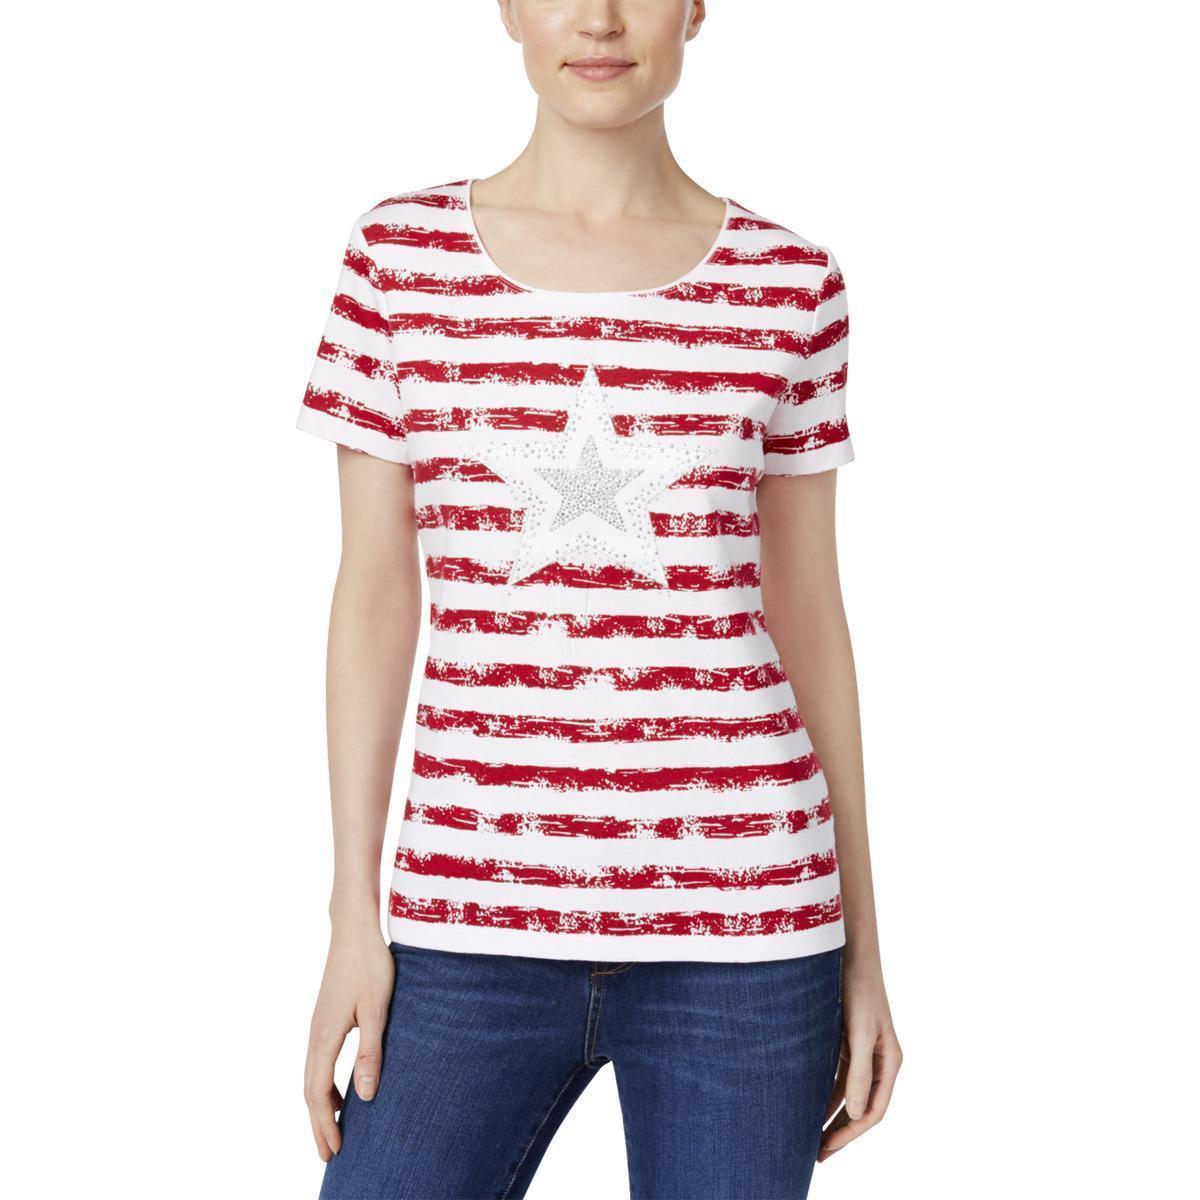 Karen Scott Womens Americana Red Patriotic Striped Casual Top, Small